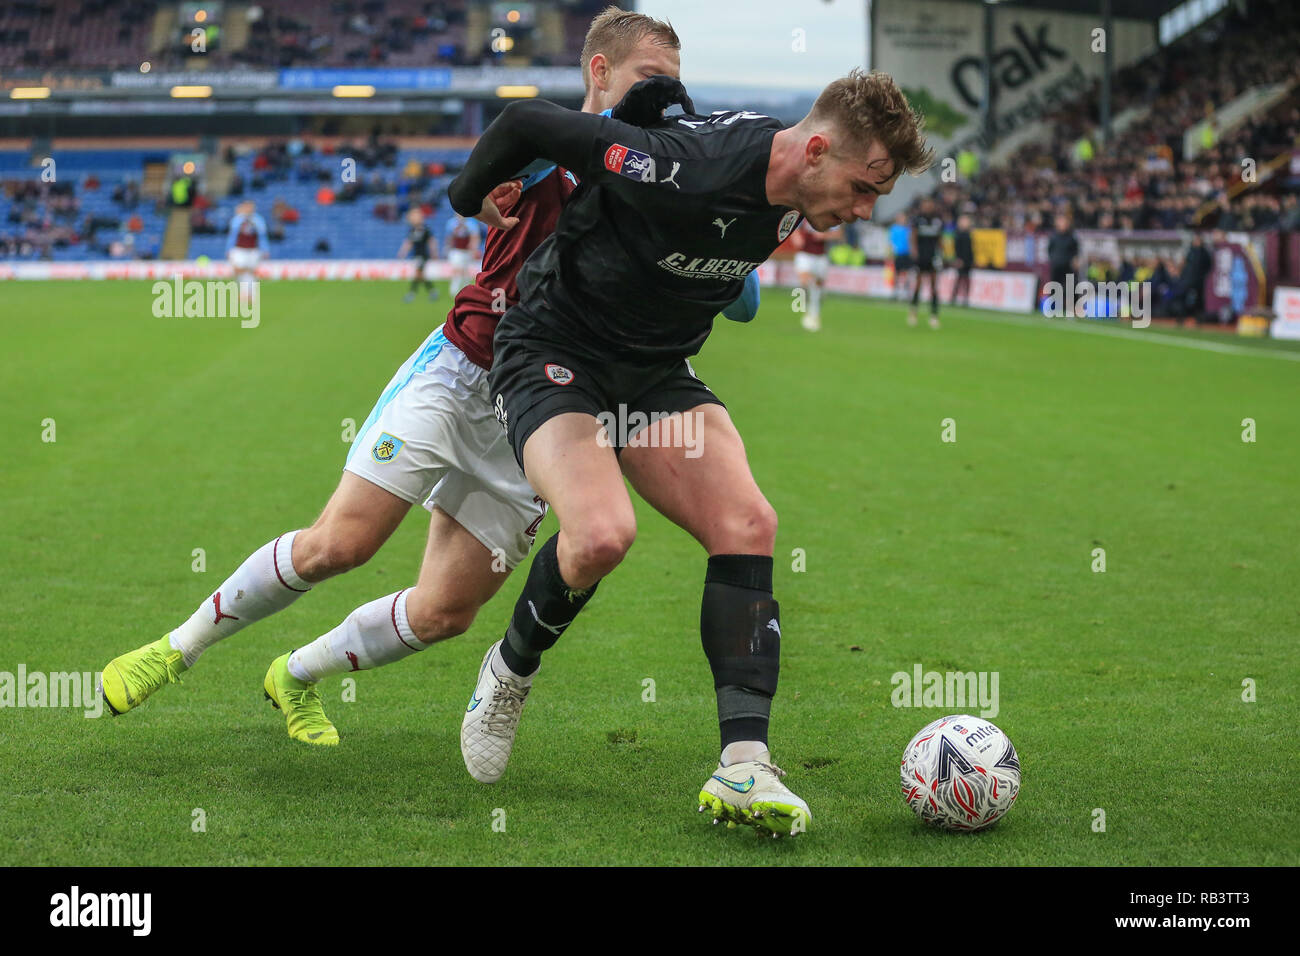 5th January 2019, Turf Moor, Burnley, England ; The Emirates FA Cup, 3rd Round, Burnley vs Barnsley : Liam Lindsay (06) of Barnsley holds off Charlie Taylor of Burnley   Credit: Mark Cosgrove/News Images  English Football League images are subject to DataCo Licence - Stock Image